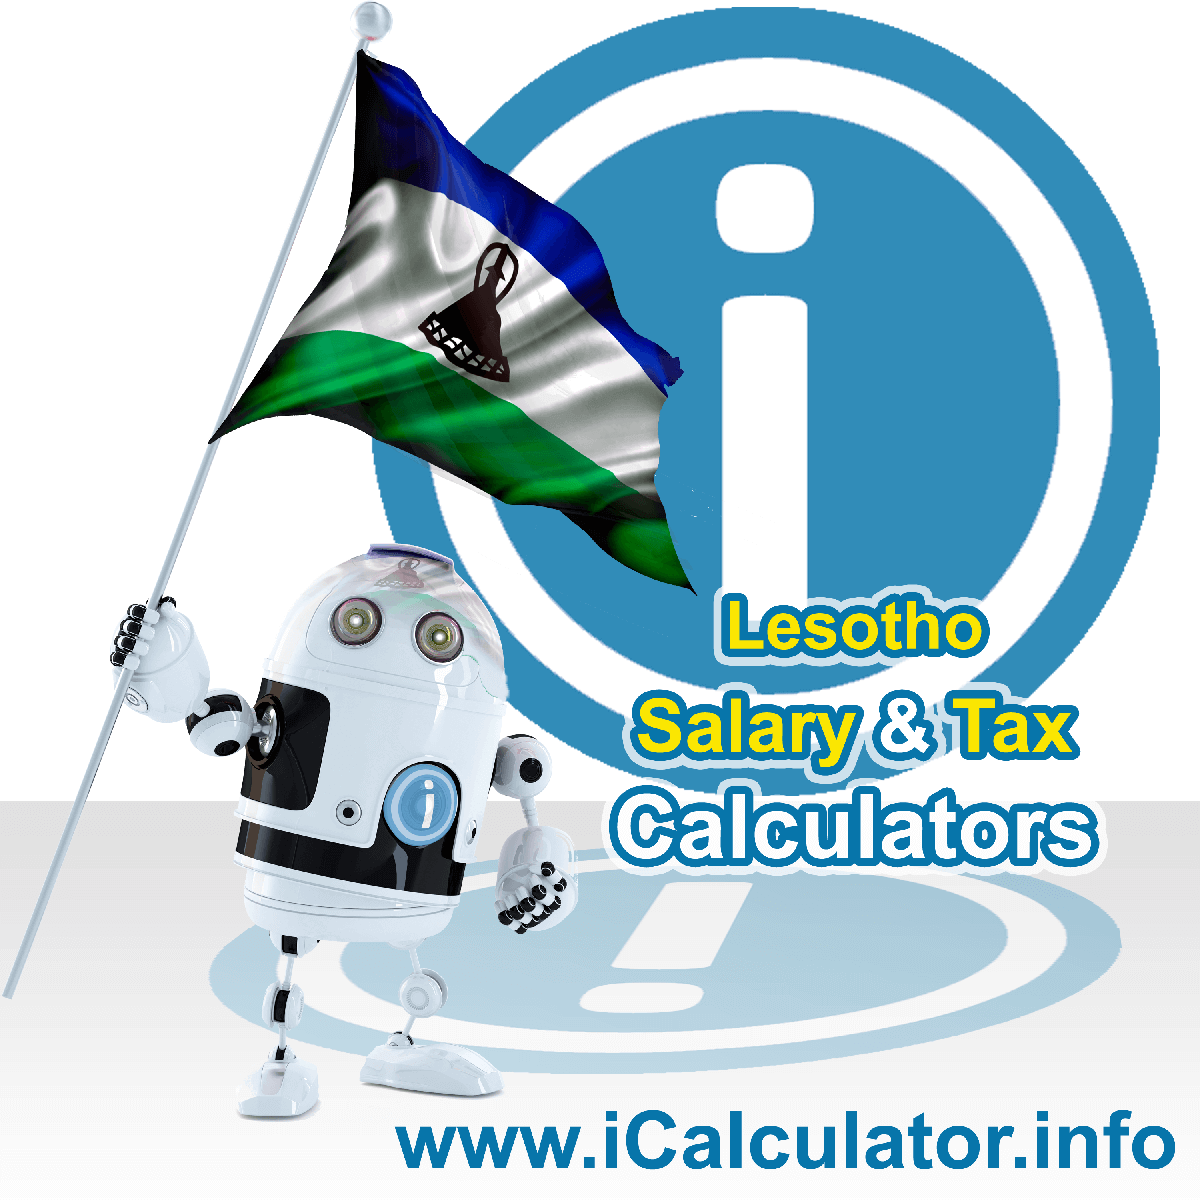 Lesotho Wage Calculator. This image shows the Lesotho flag and information relating to the tax formula for the Lesotho Tax Calculator